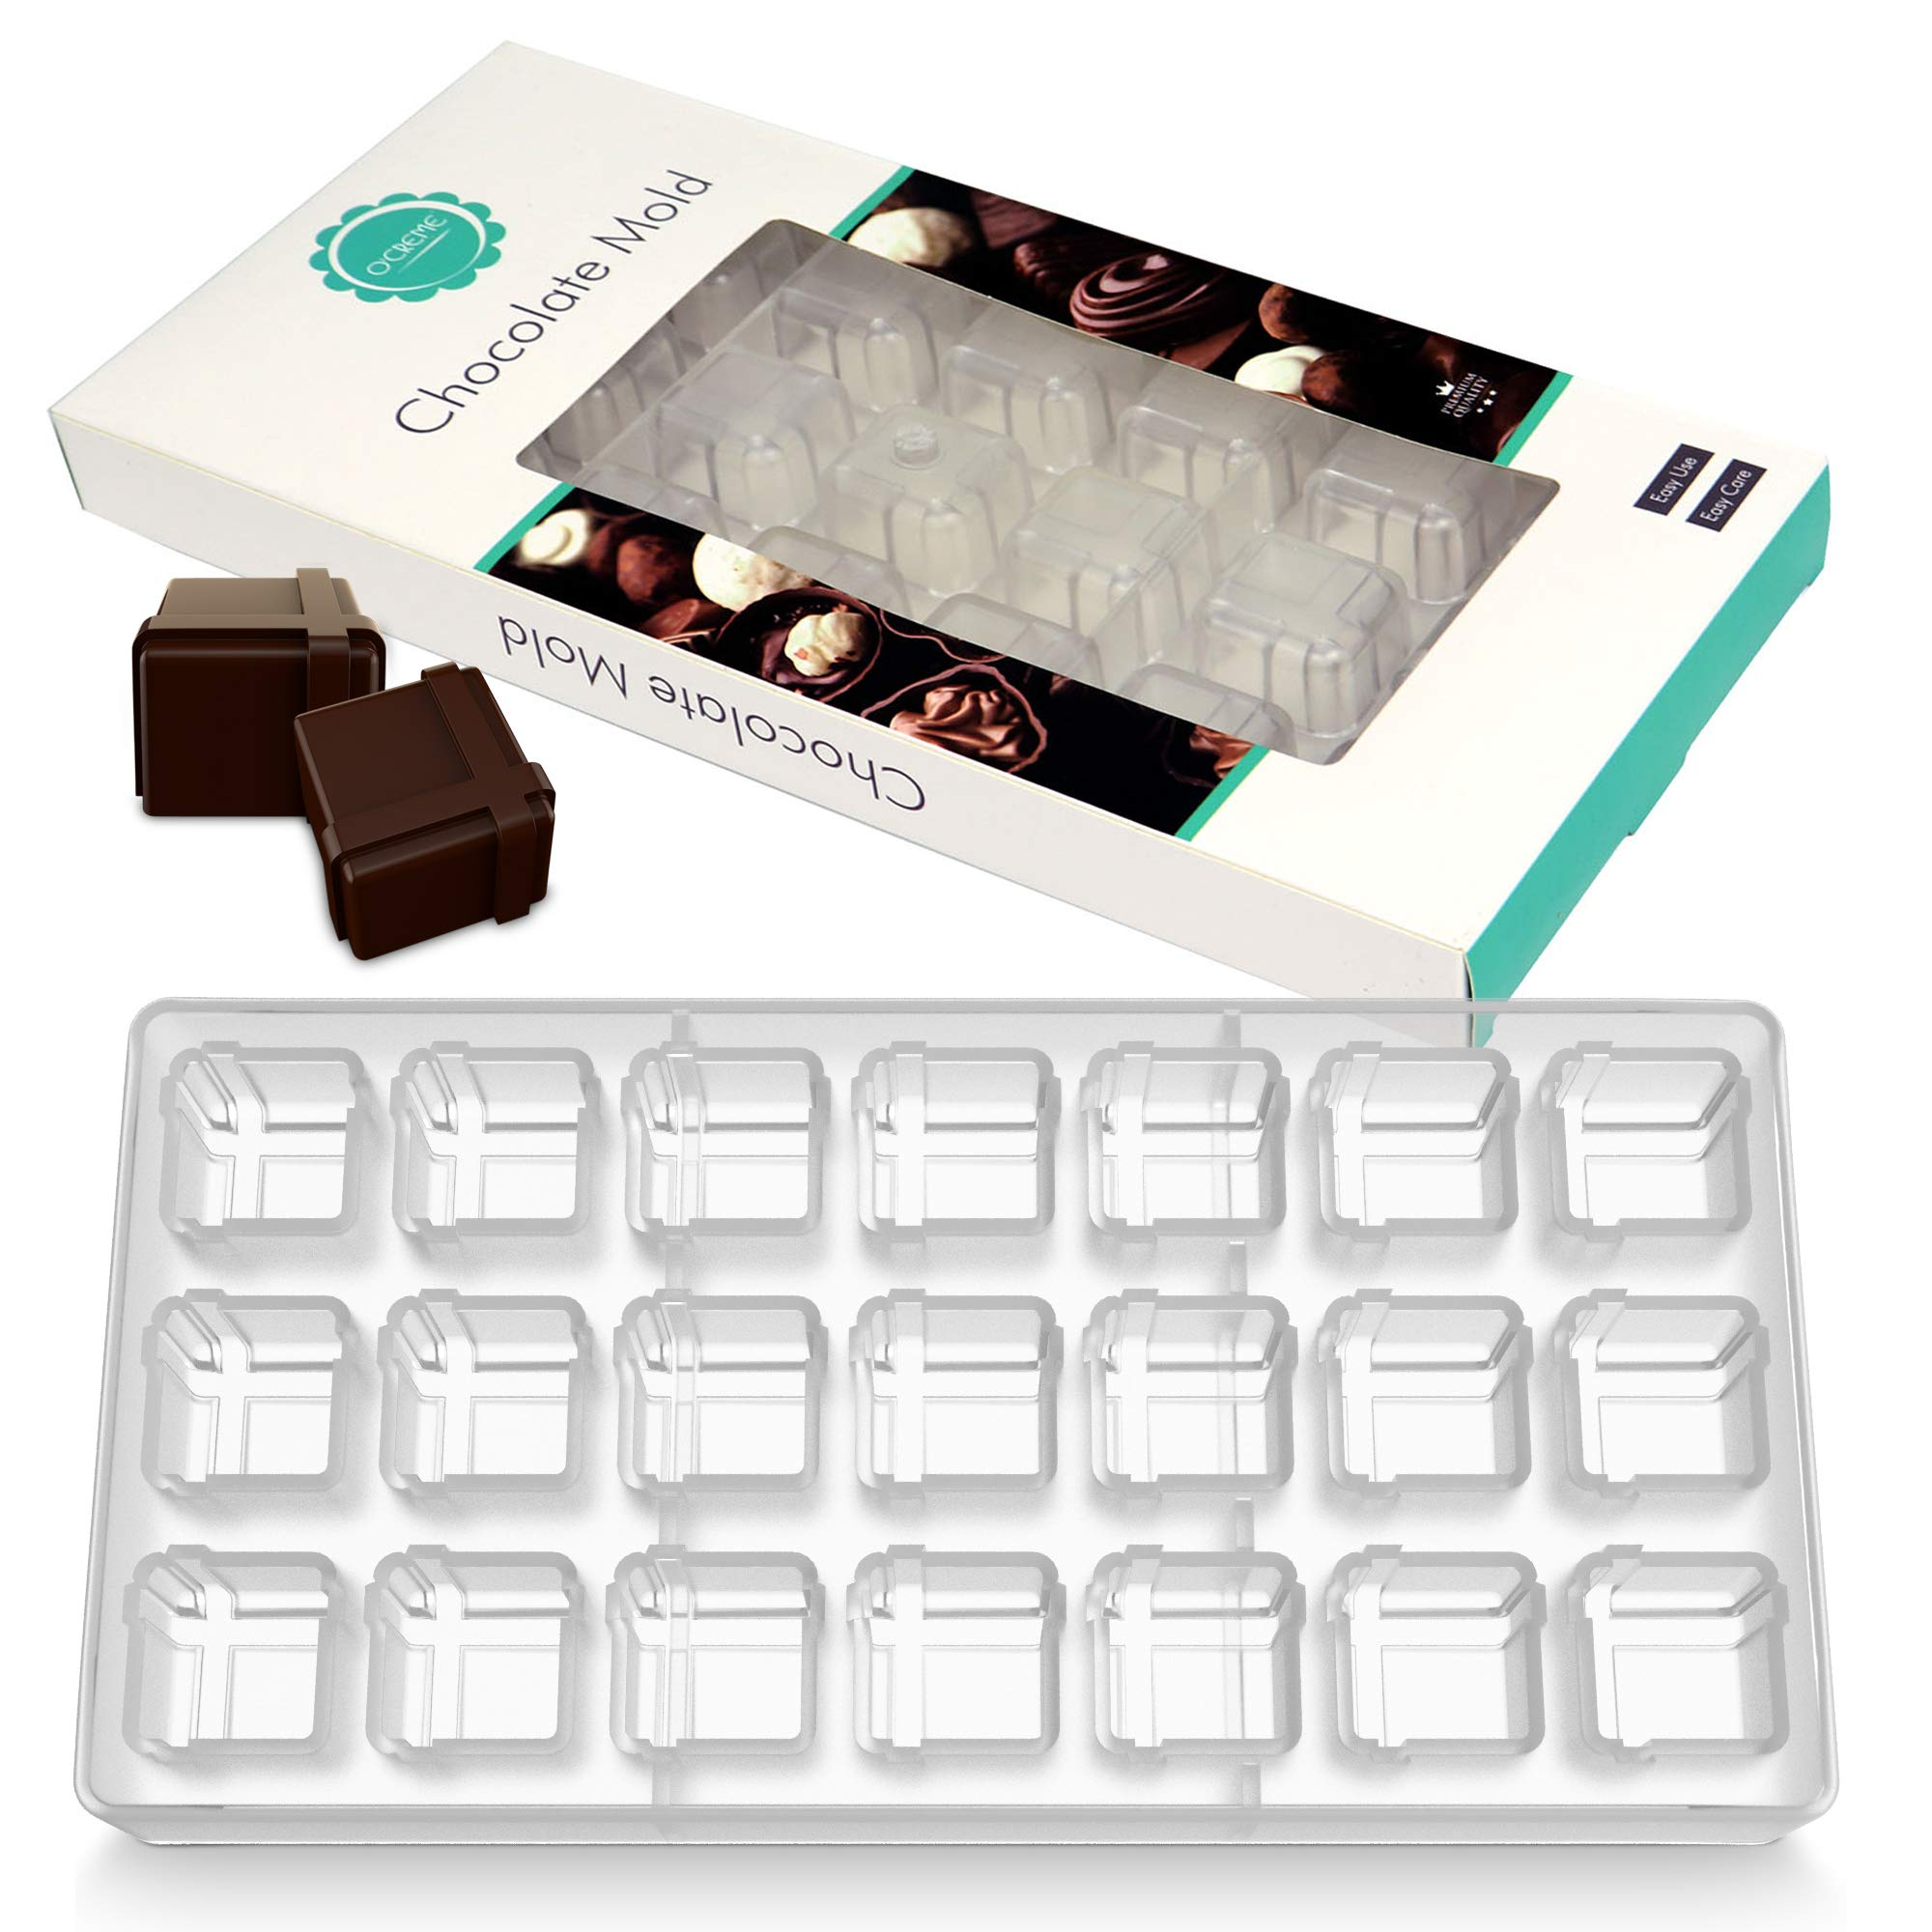 O'Creme Clear Polycarbonate Chocolate Mold Transparent Candy Mould Square Gift Box 21 Cavities